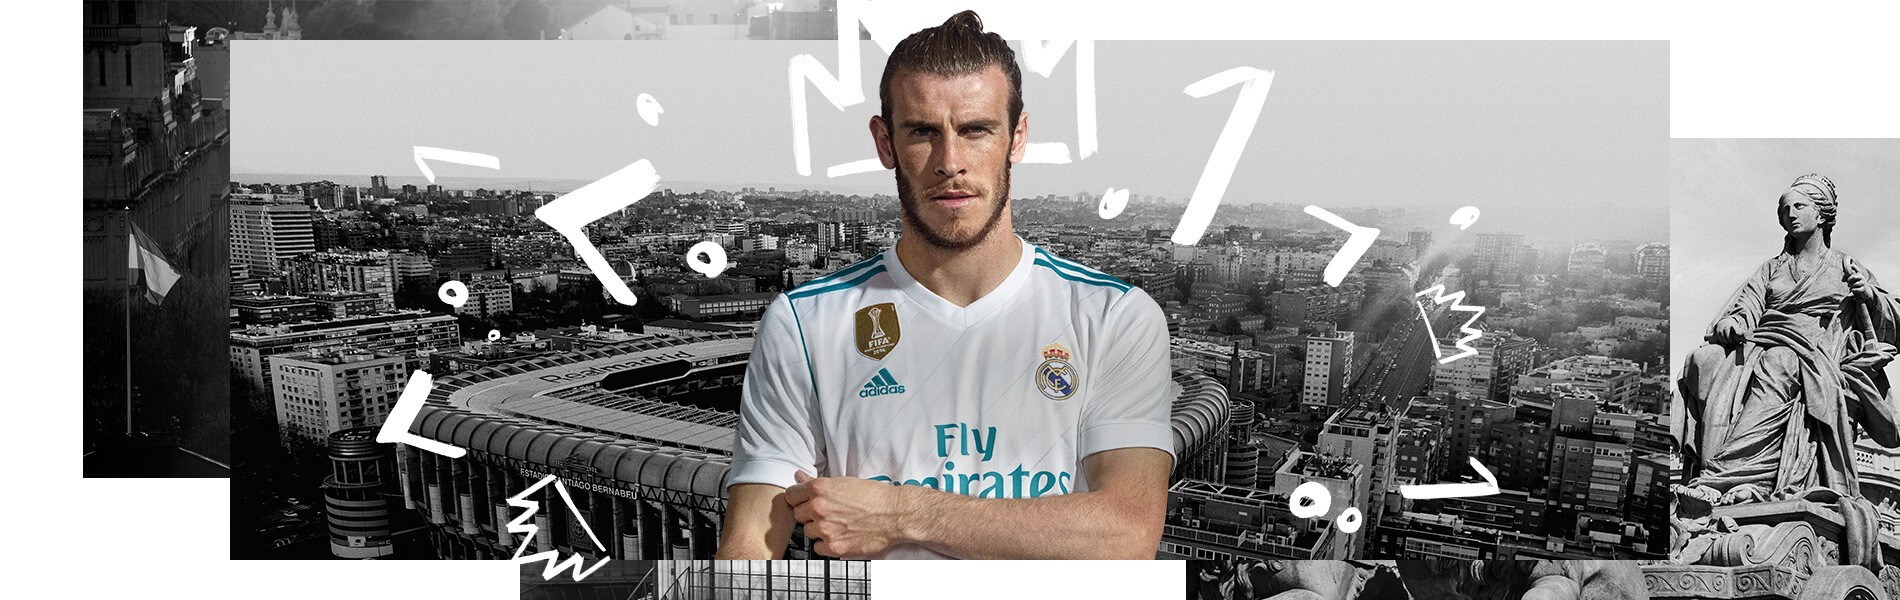 New Real Madrid 2017/18 Shirts